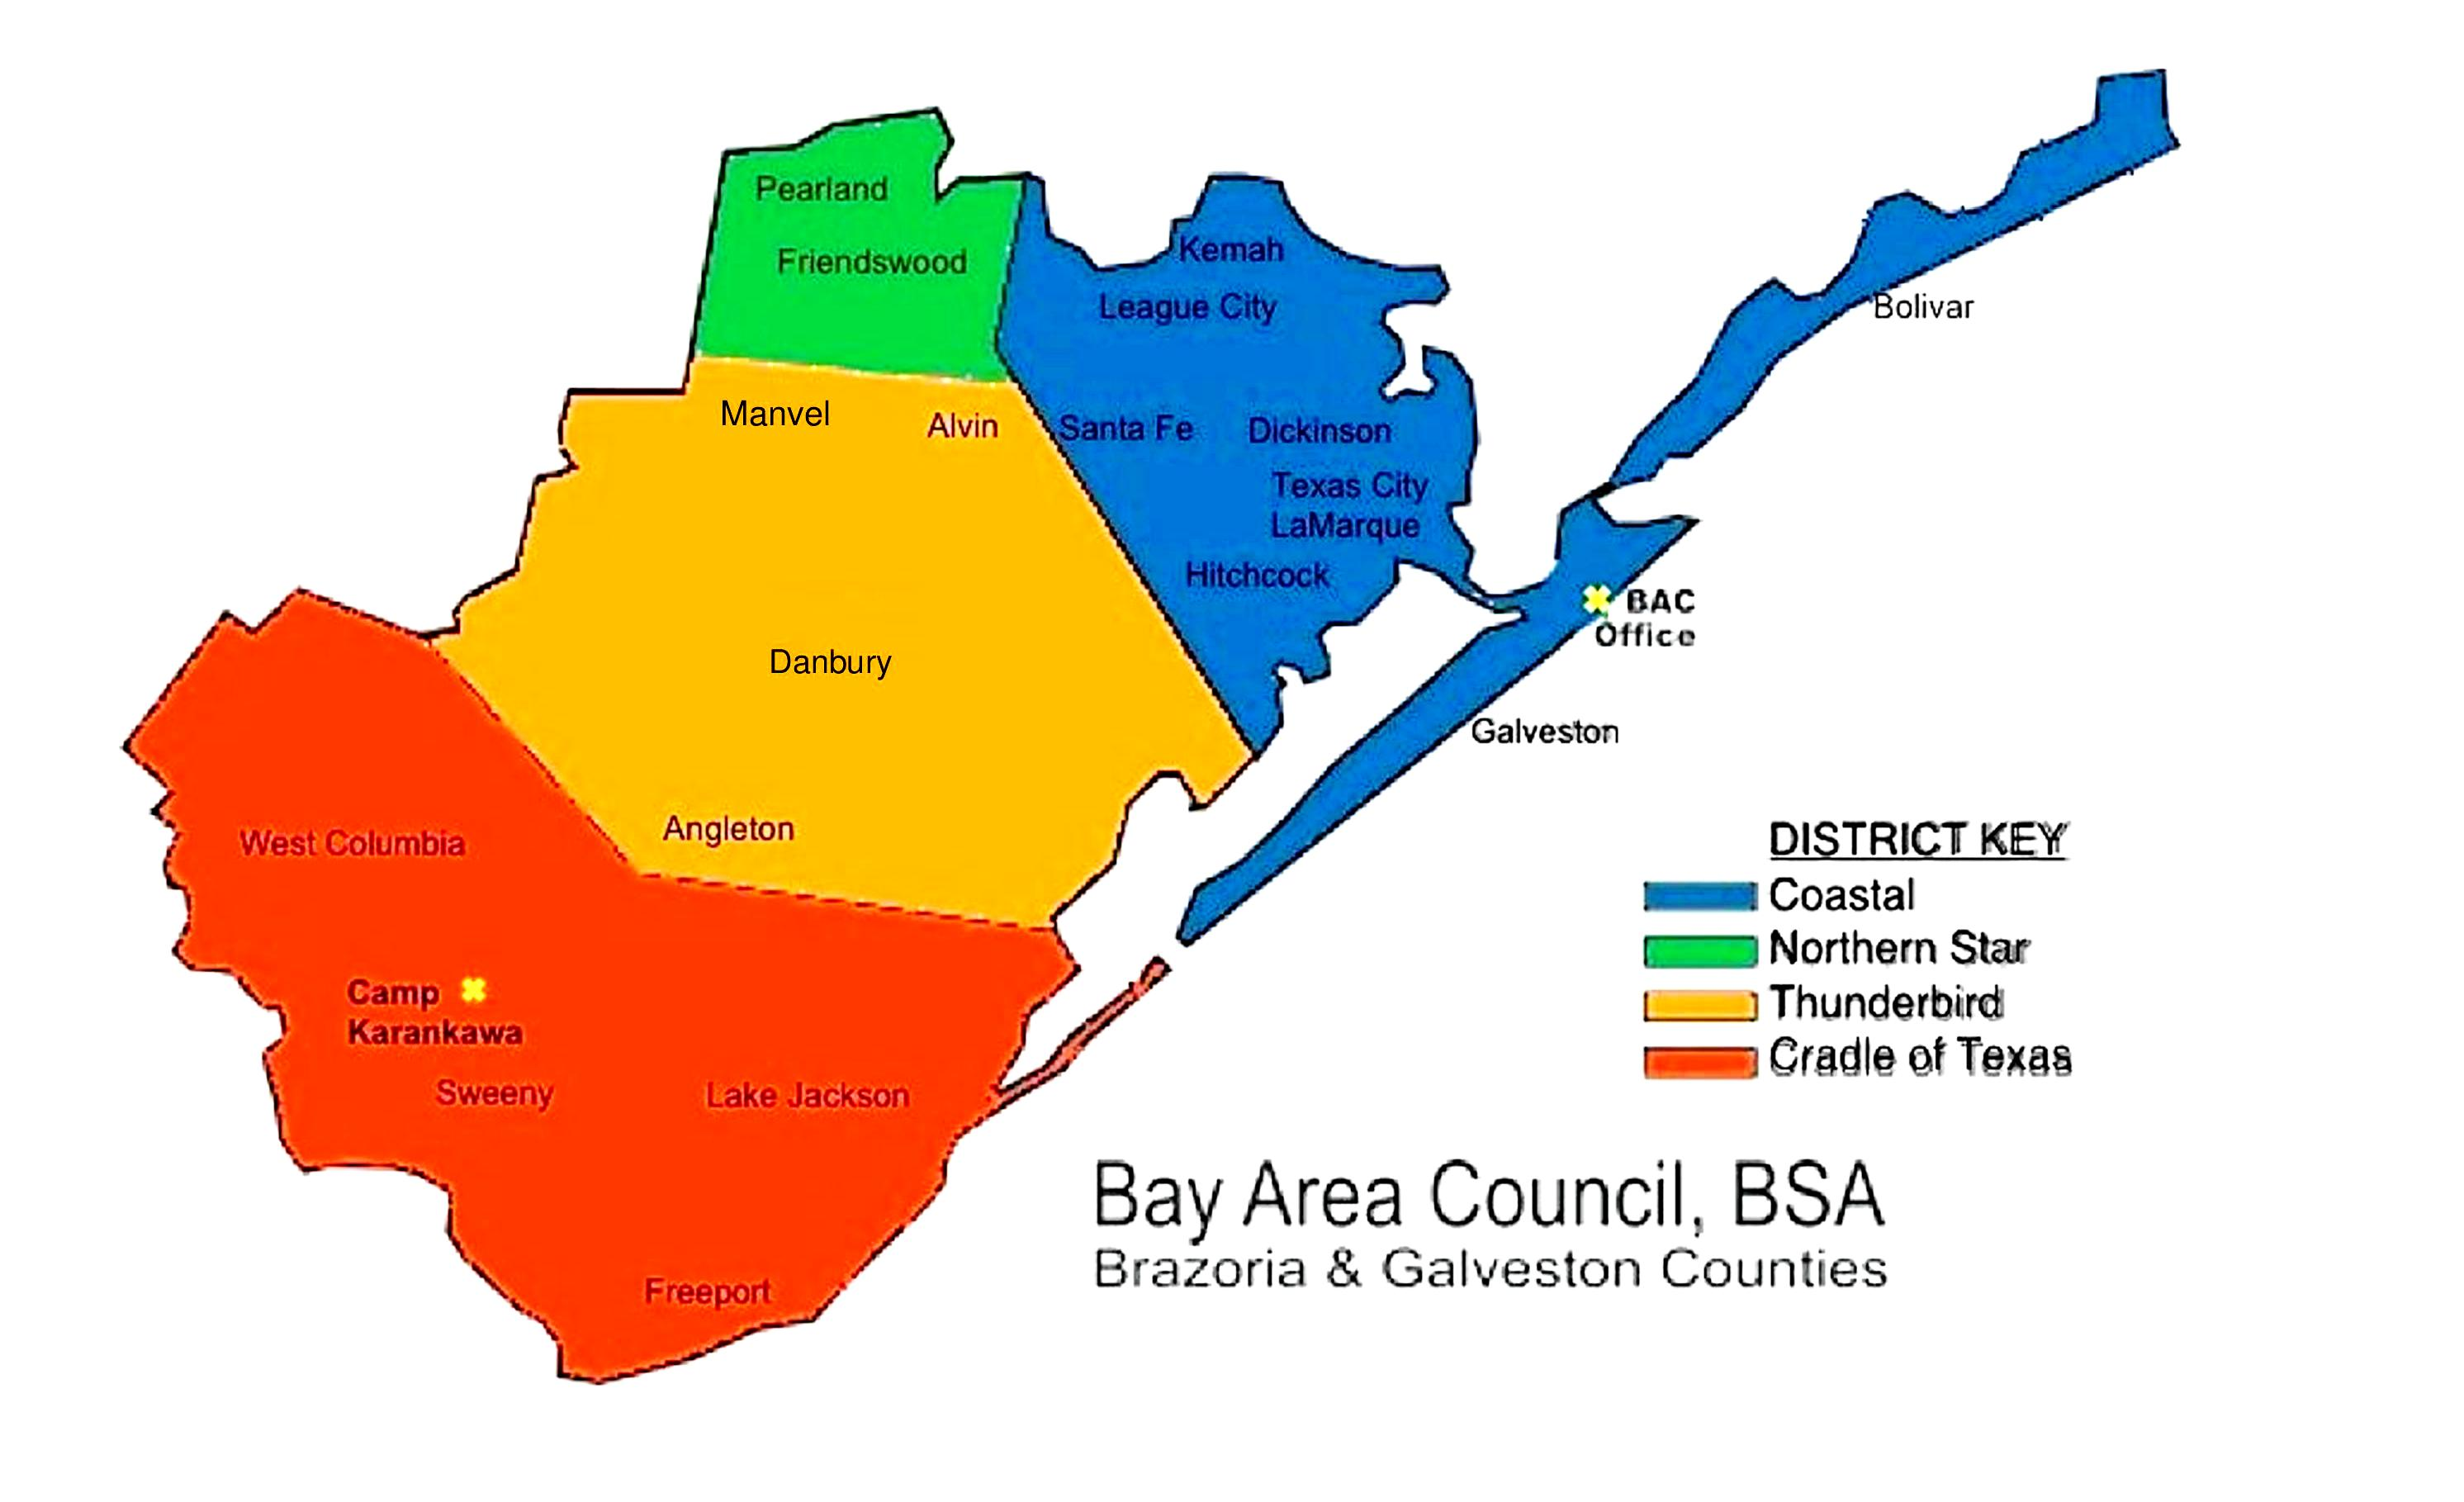 Bay Area Council District Map